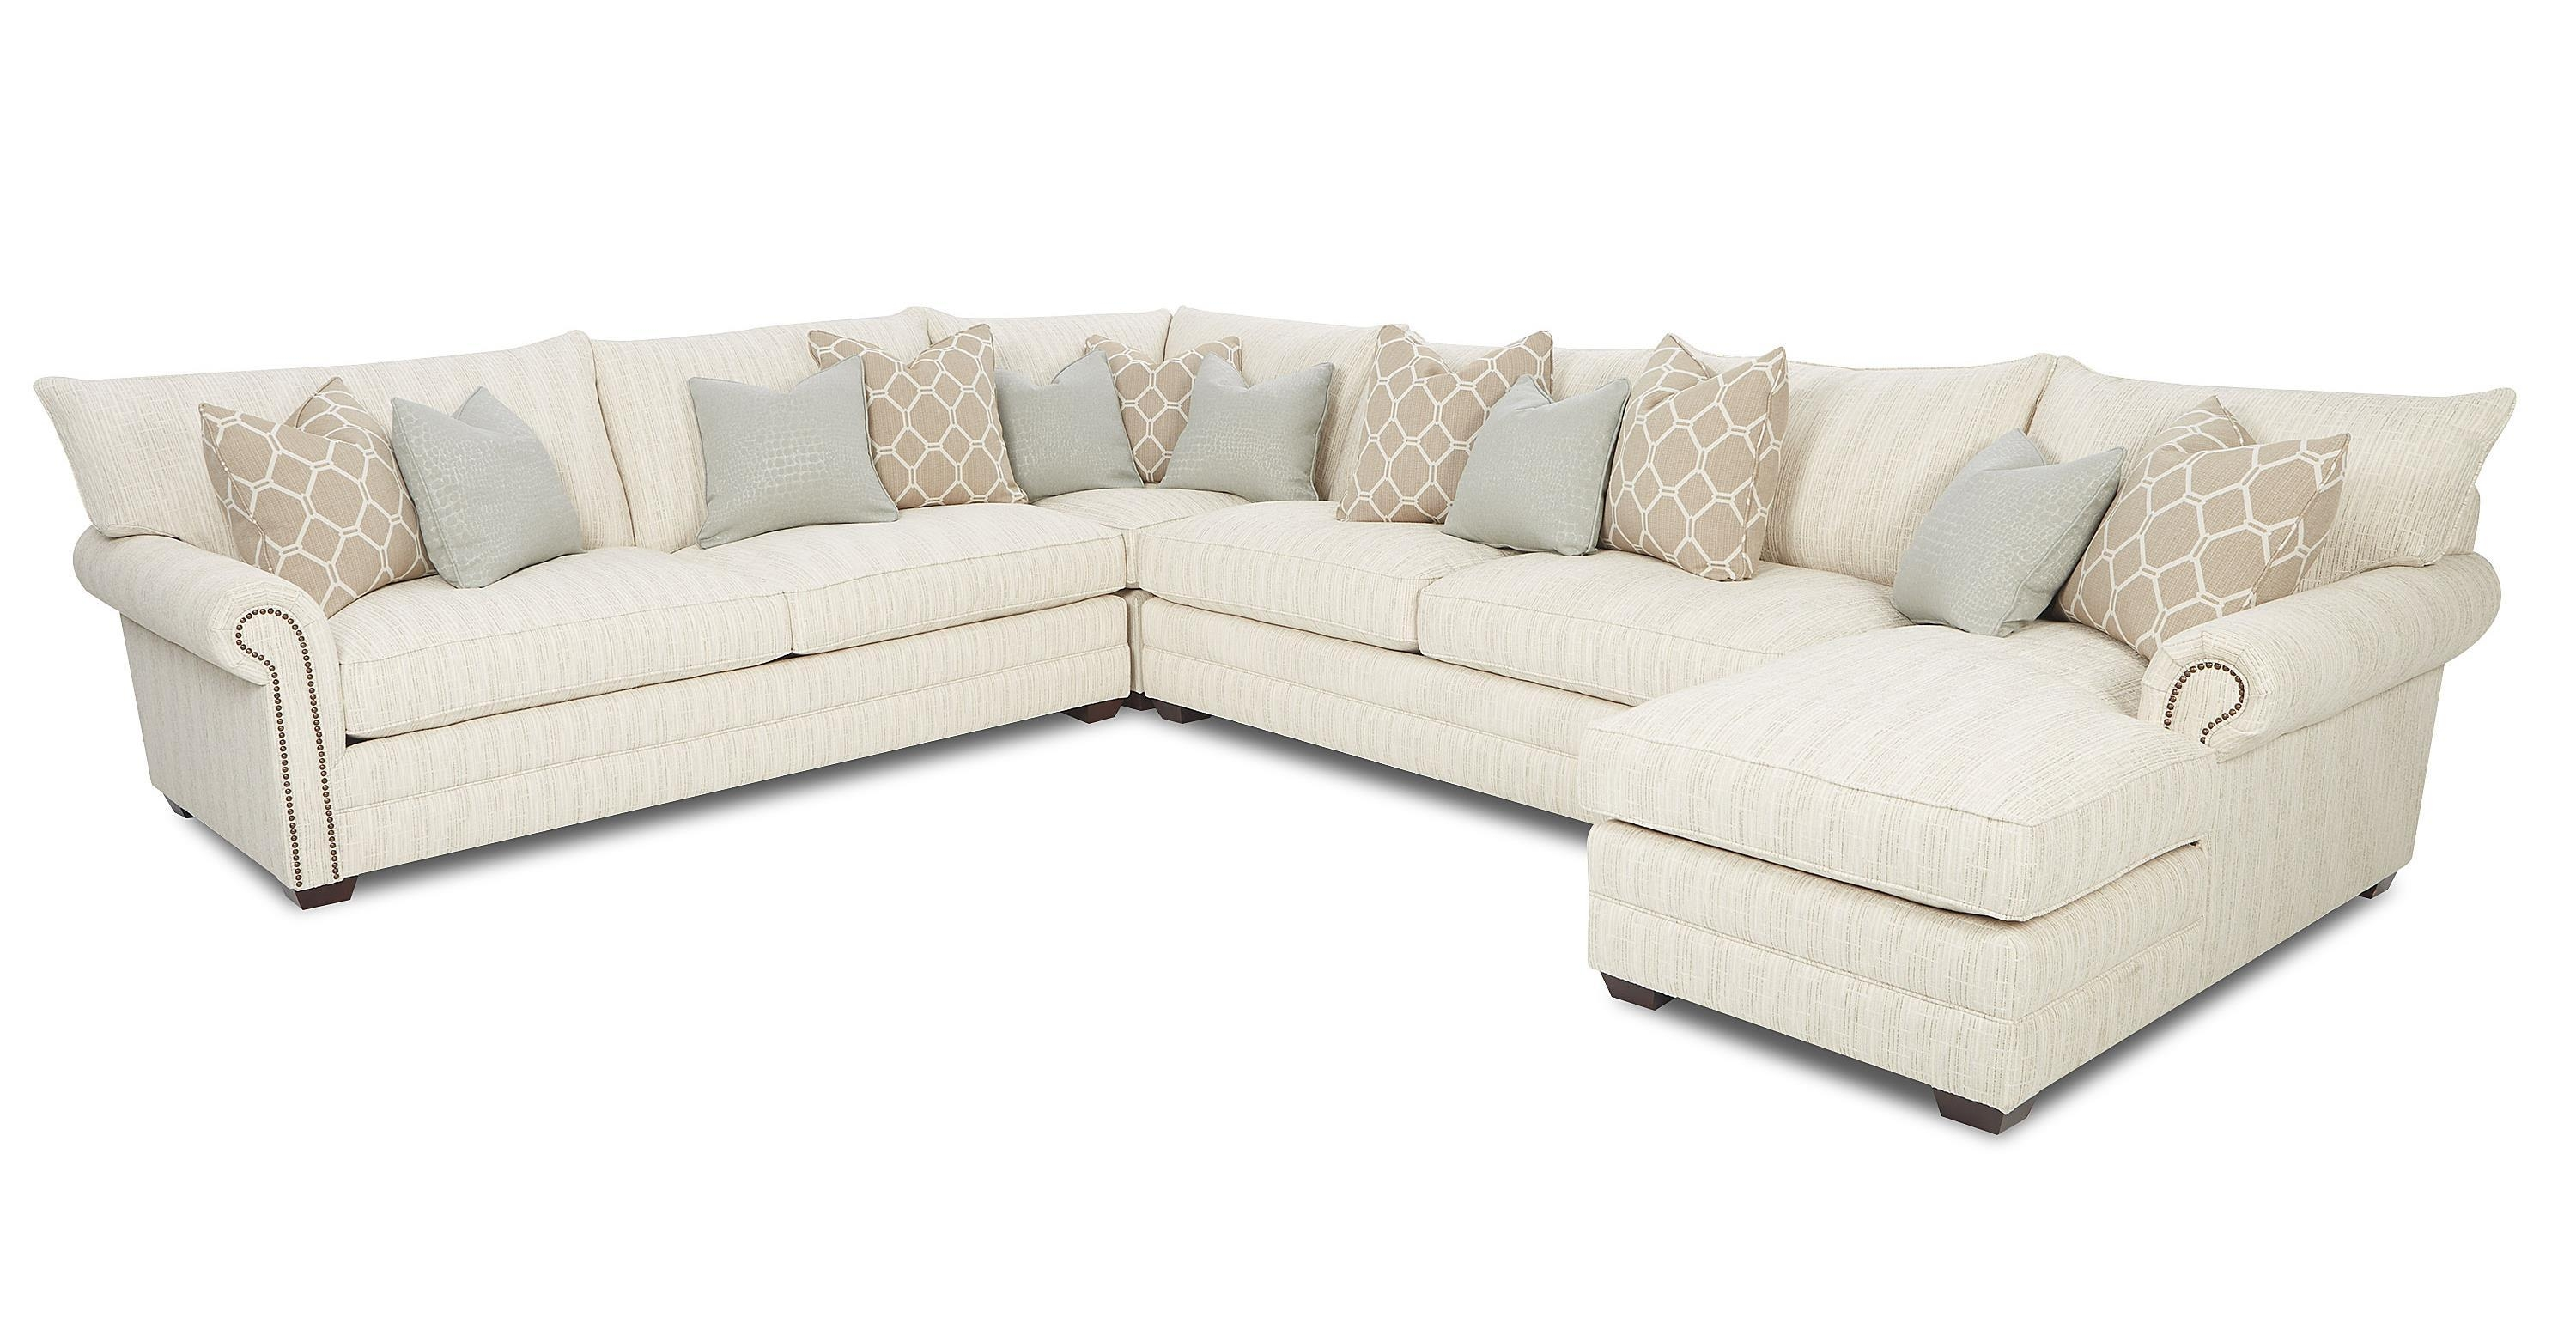 Traditional Sectional Sofa With Nailhead Trim And Chaise Lounge In Traditional Sectional Sofas Living Room Furniture (Image 19 of 20)